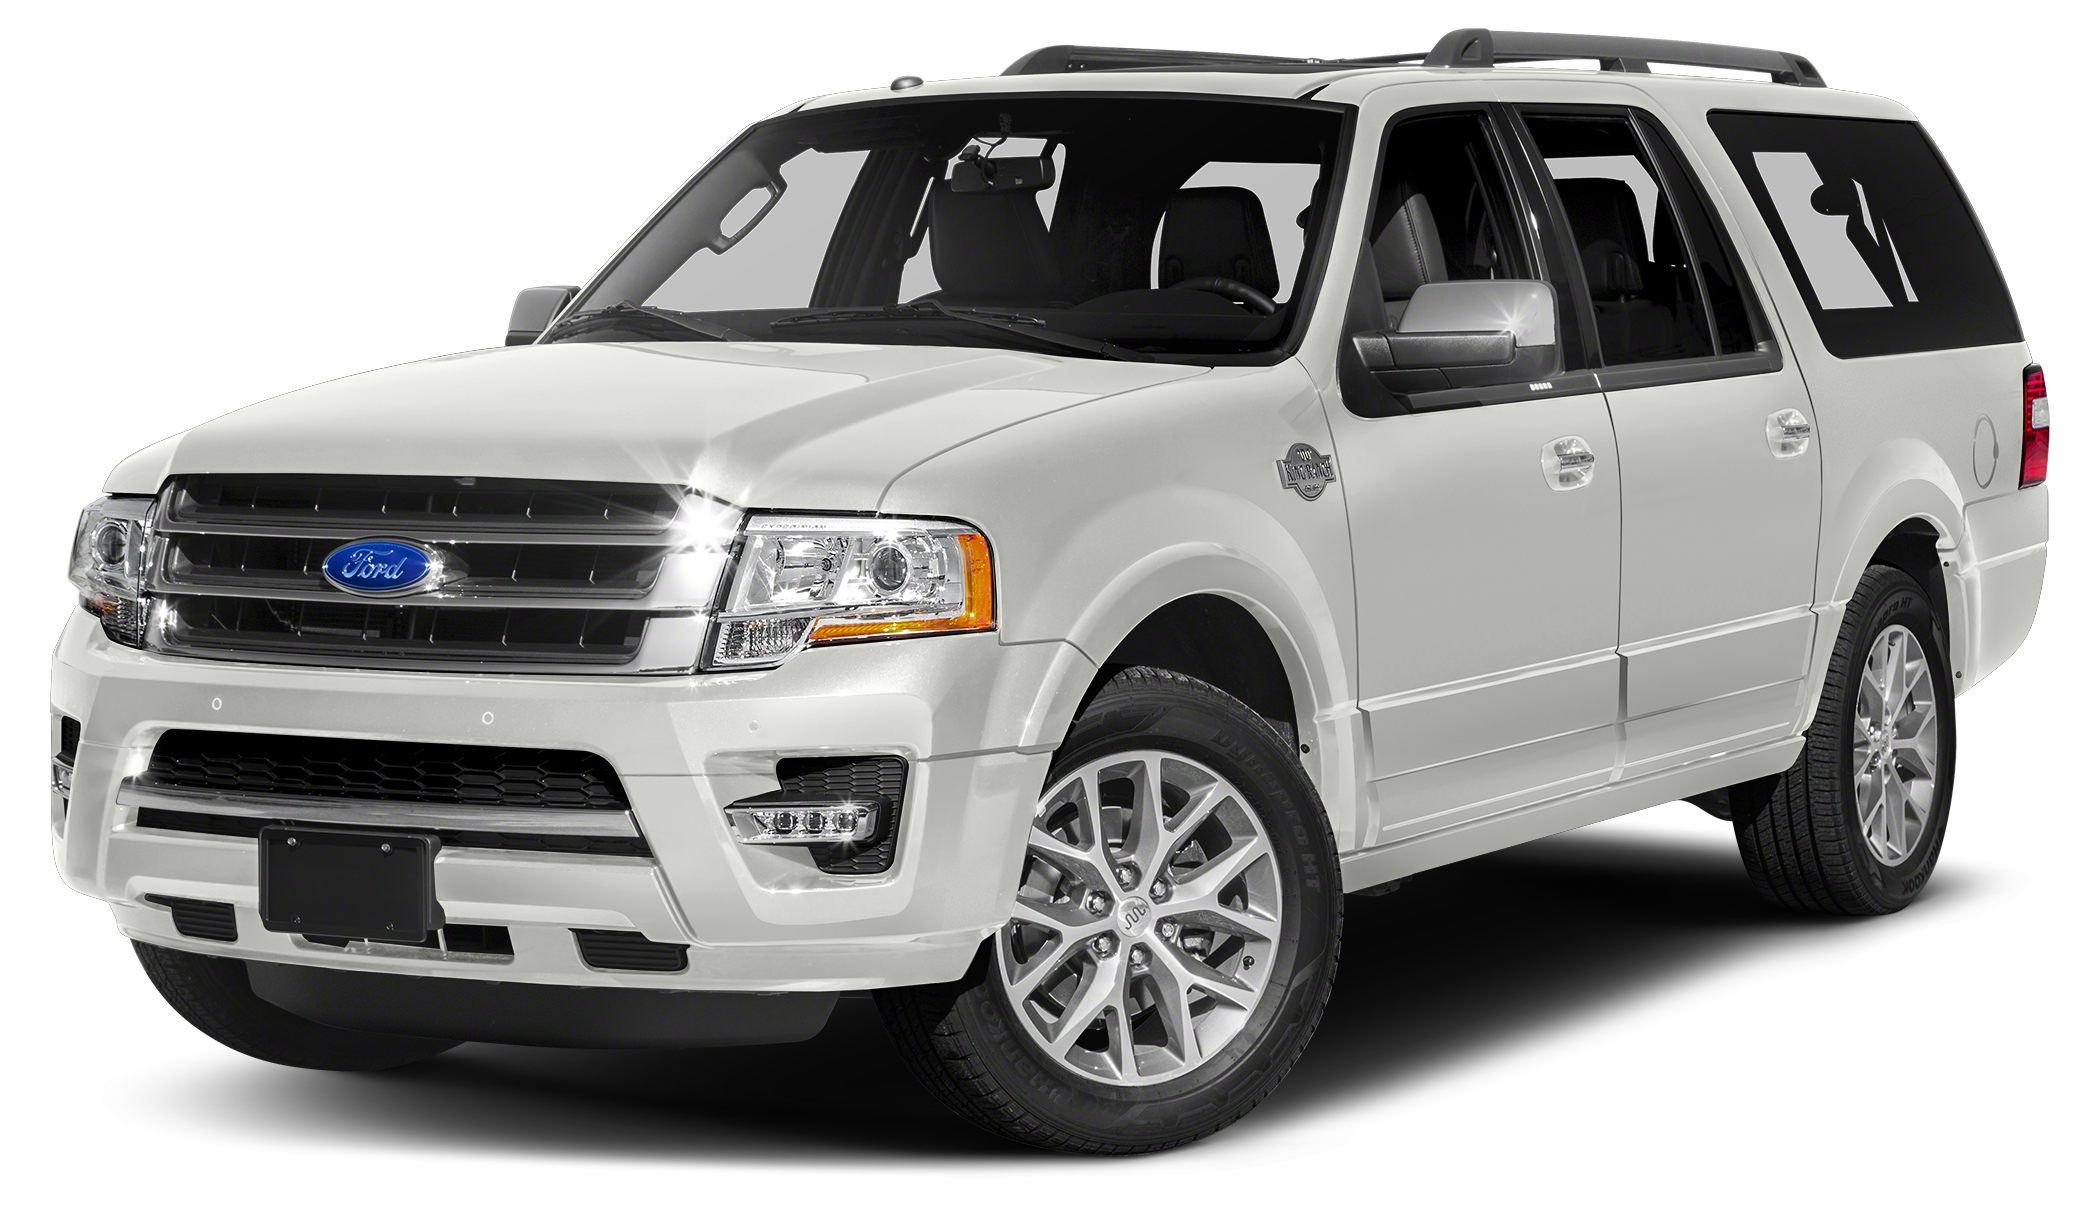 2017 Ford Expedition EL King Ranch Price includes 750 - Ford Credit Retail Bonus Customer Cash